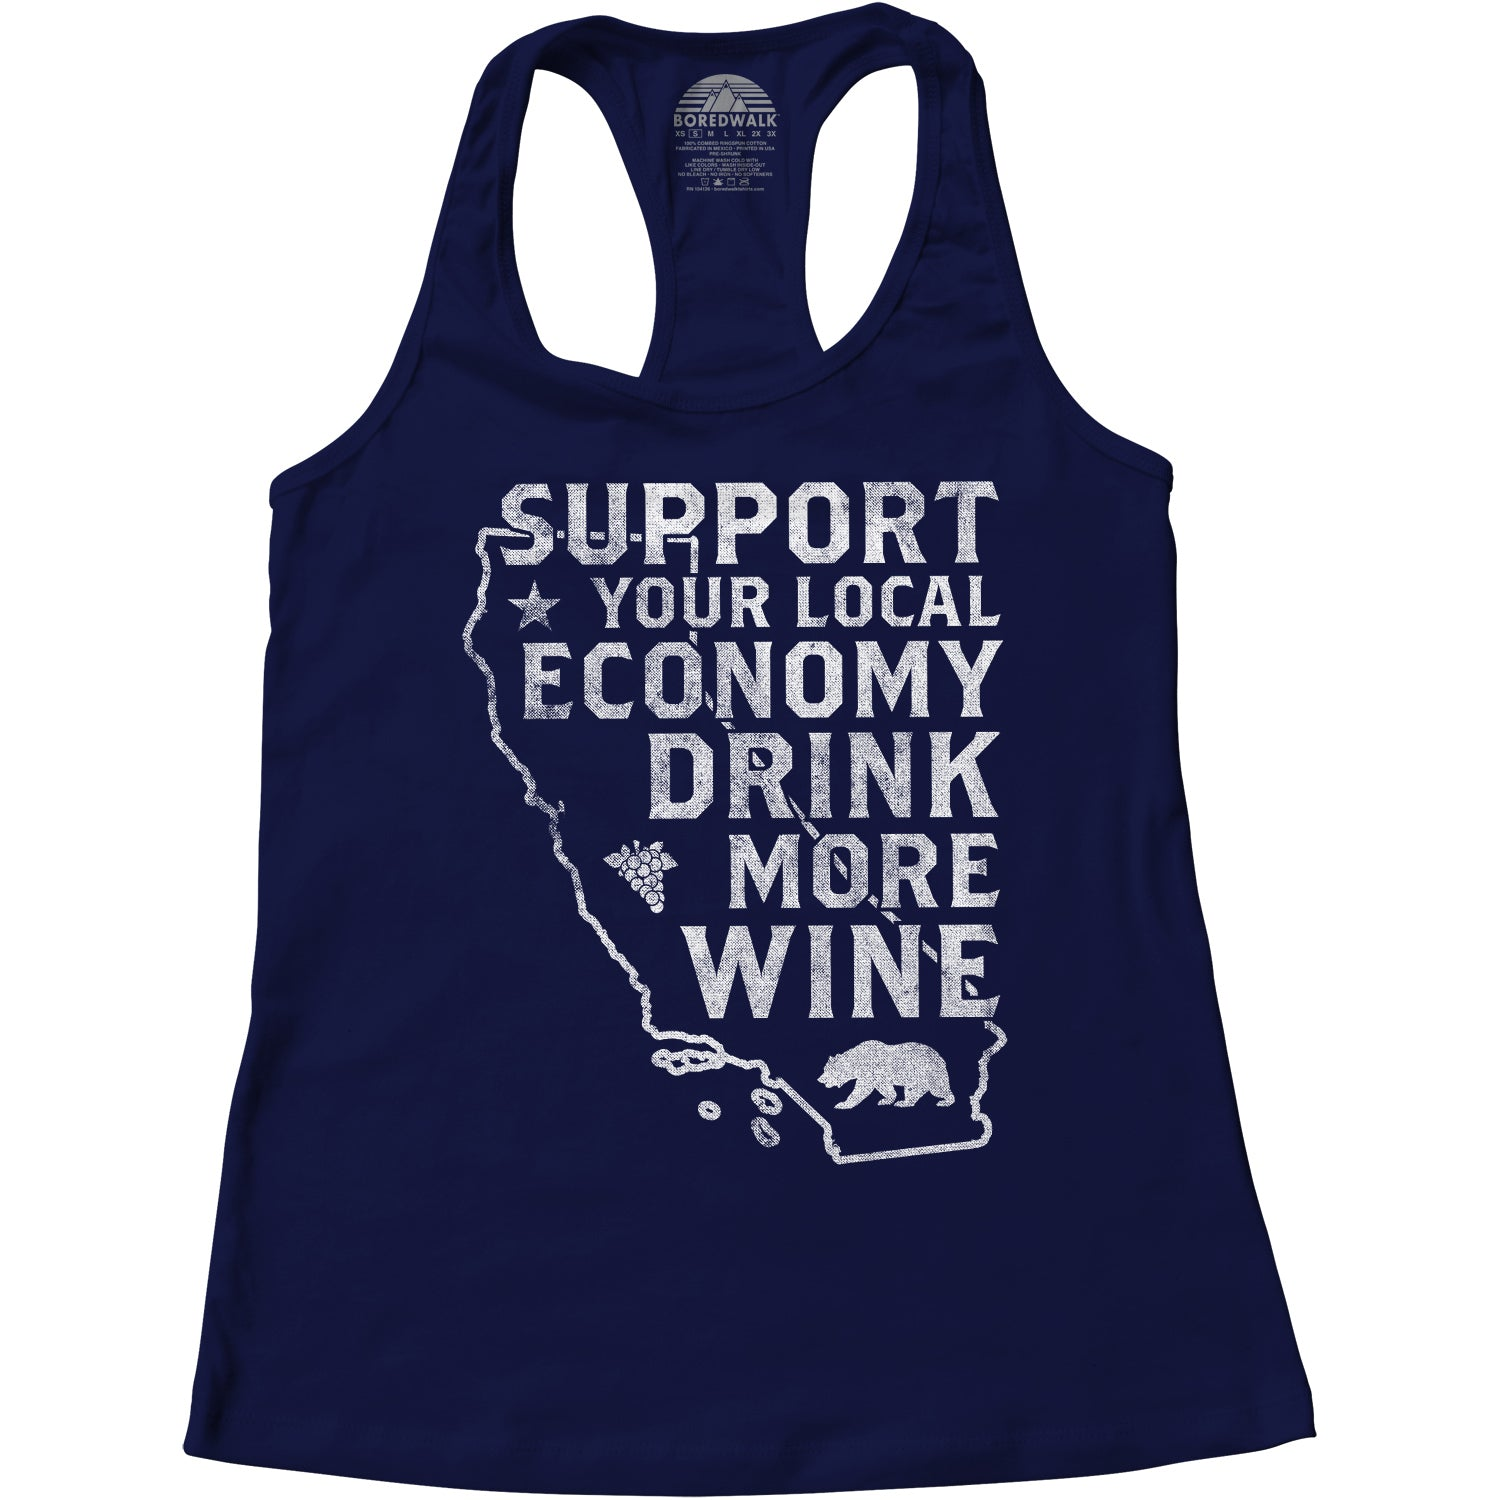 Women's Support Your Local Economy Drink More Wine California Racerback Tank Top